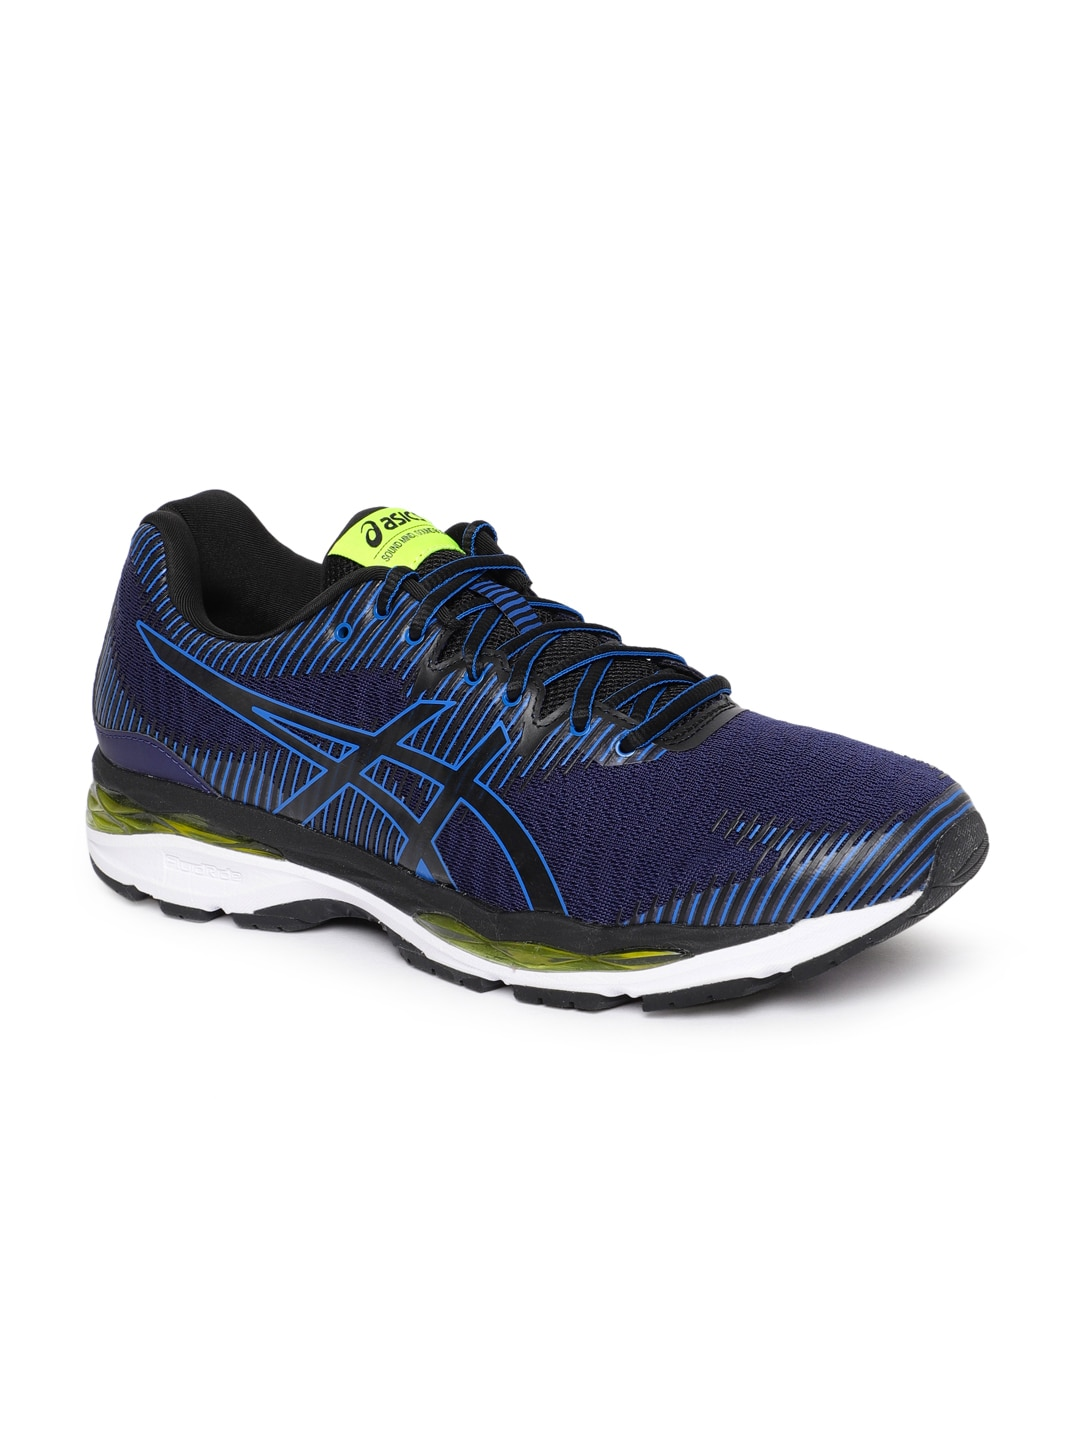 Sports Shoes - Buy Sport Shoes For Men   Women Online  81ecf60cc89